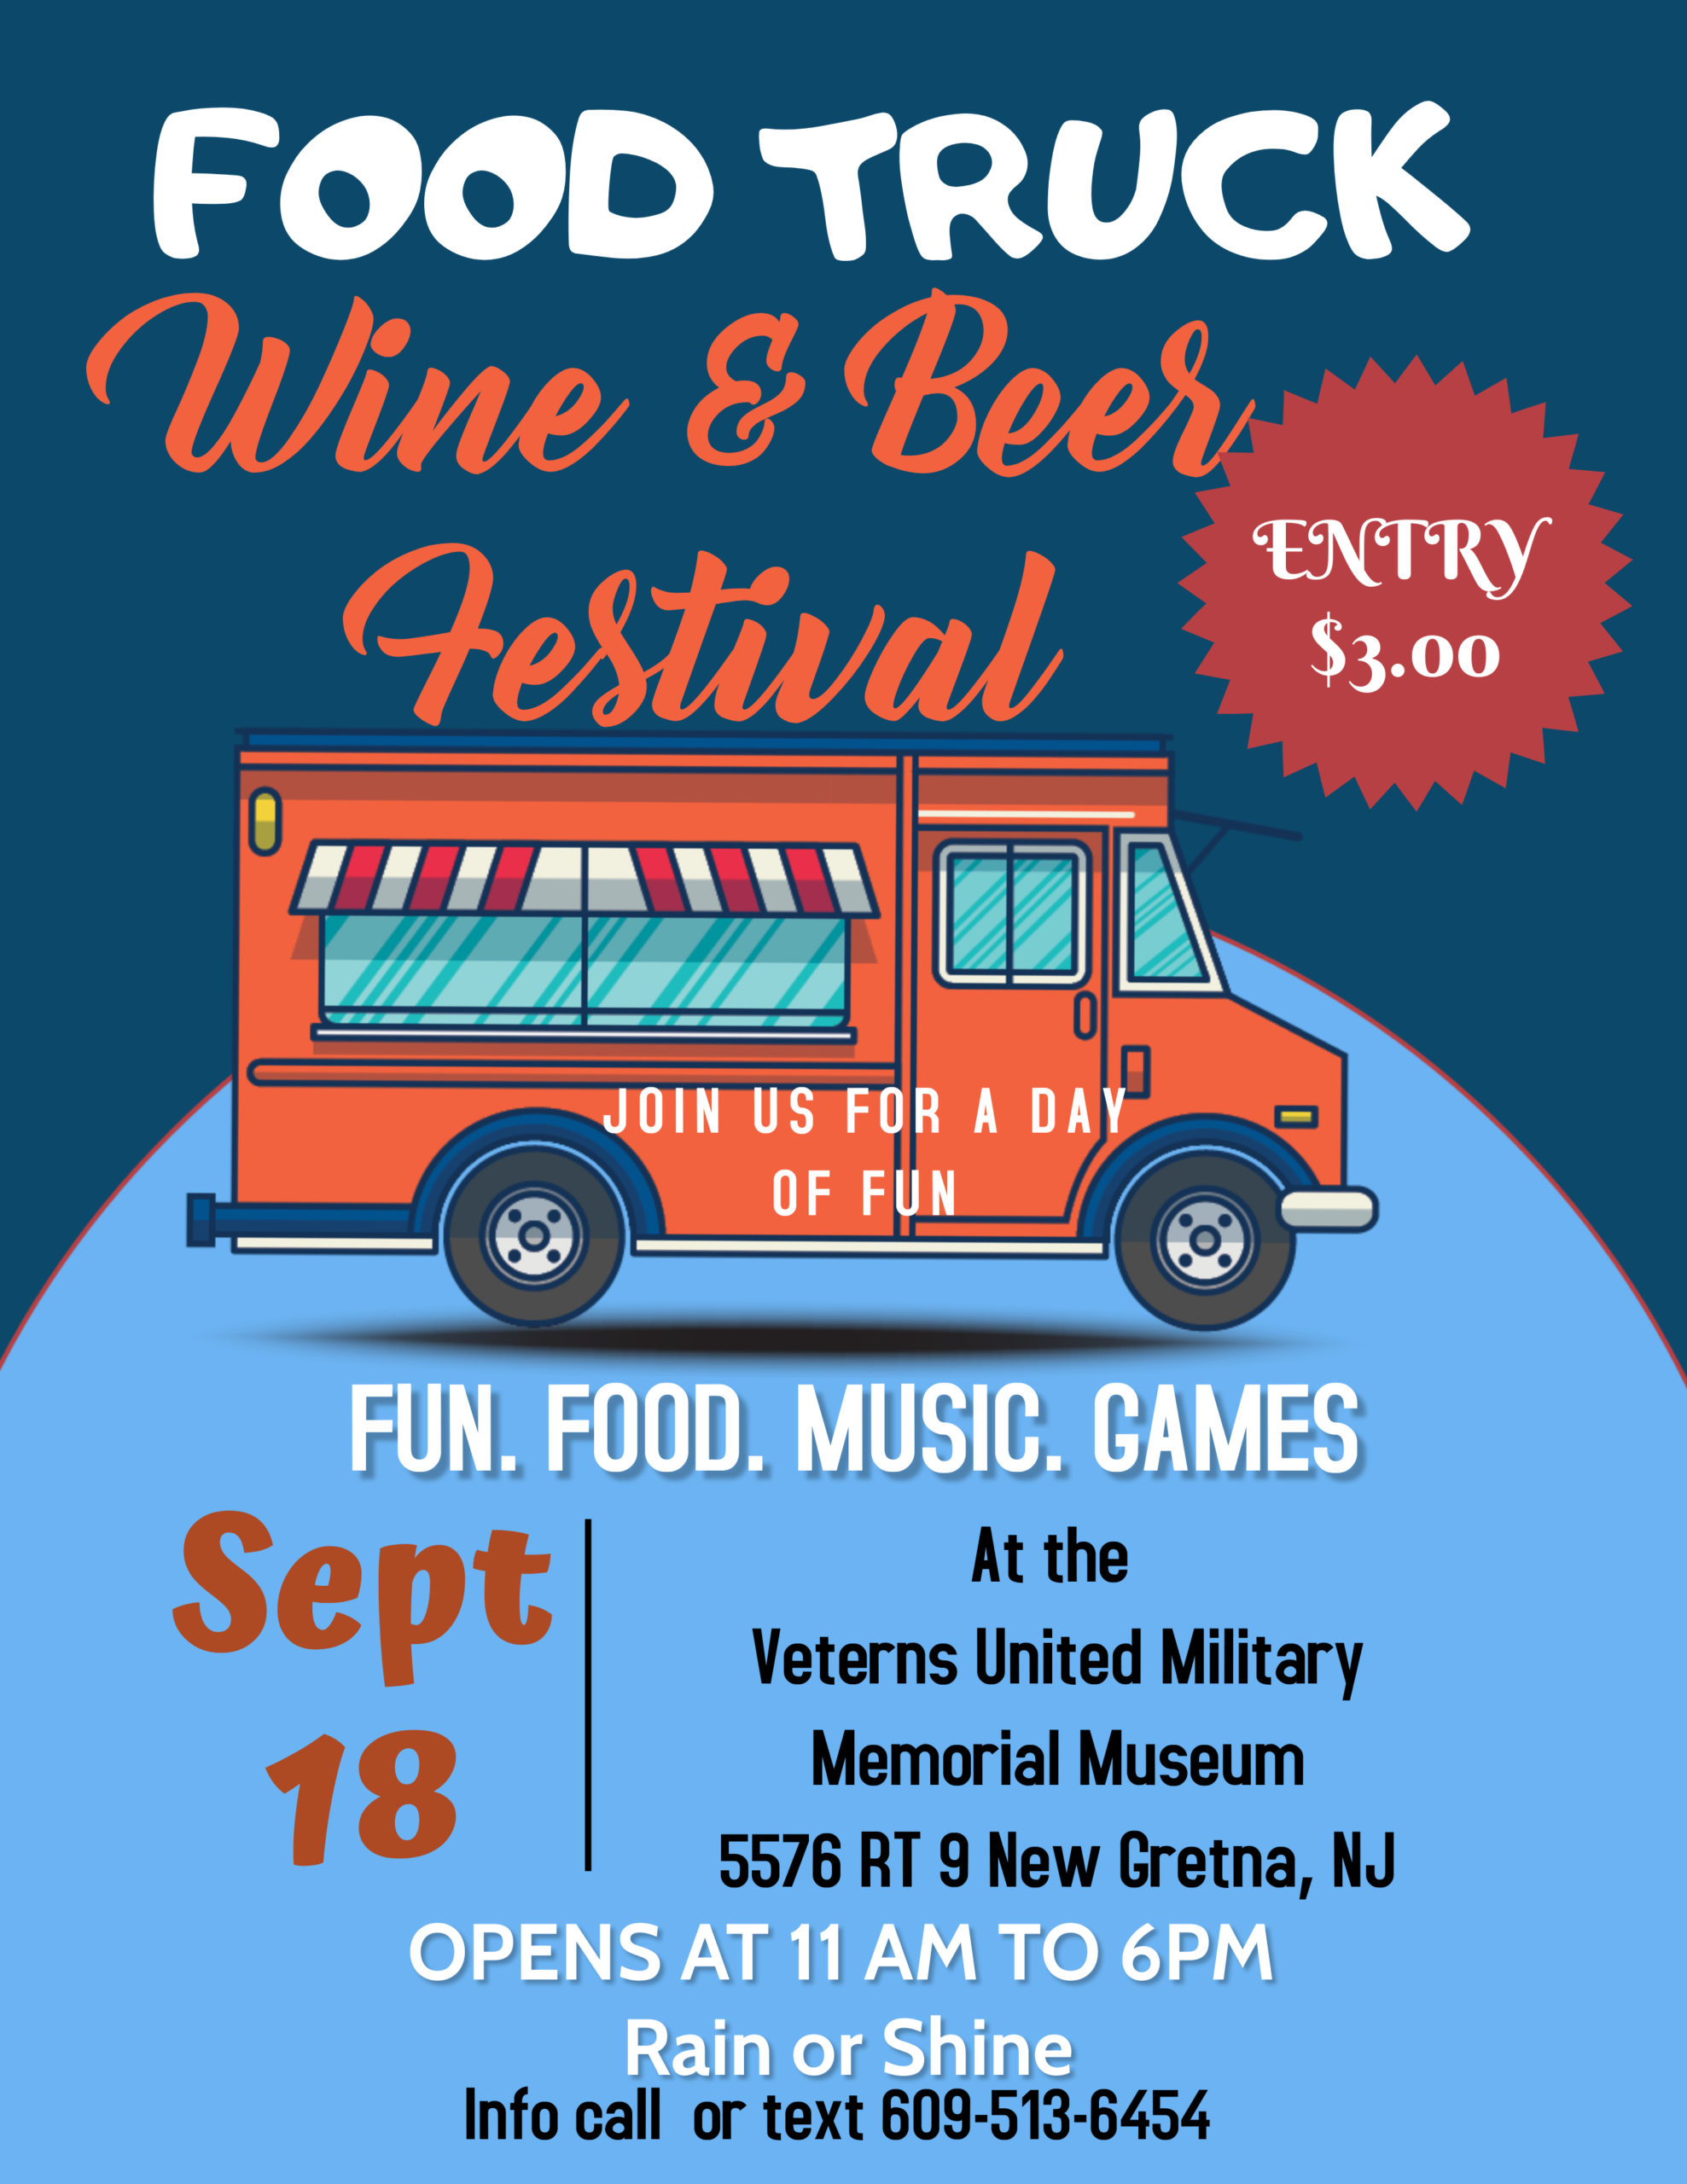 Copy of Copy of Food Truck Festival flyer 1 scaled - Food Truck Wine and Beer Festival